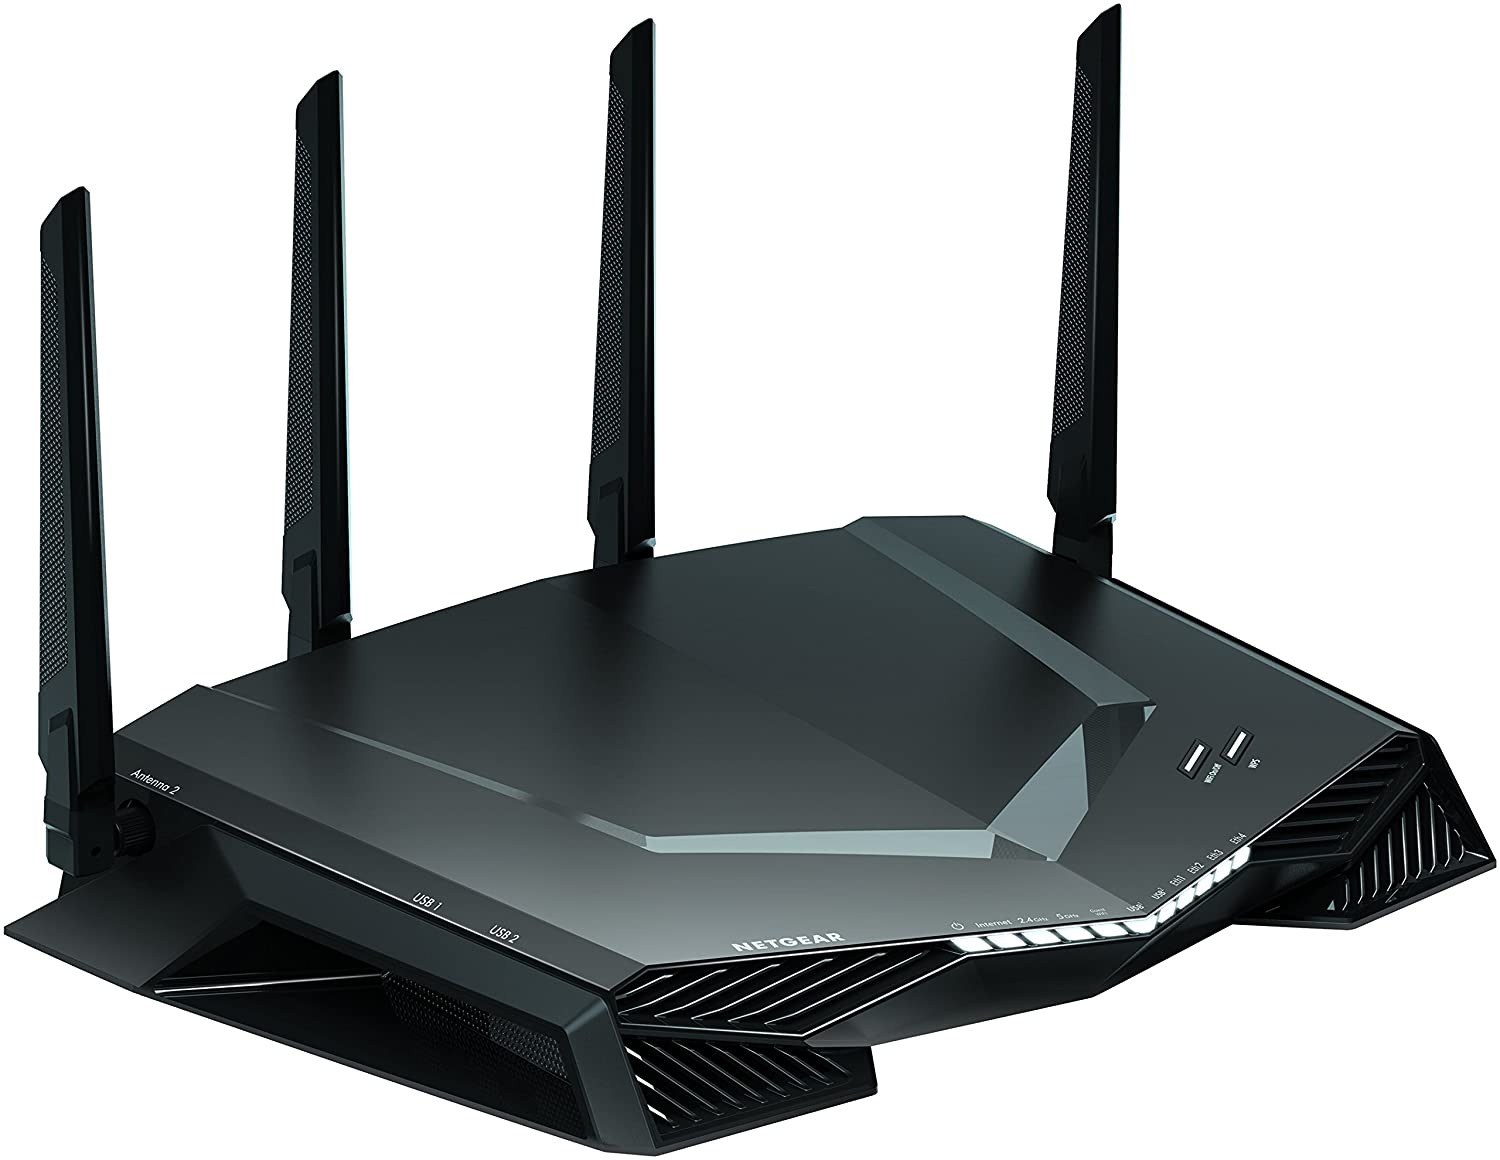 NETGEAR Nighthawk Pro Gaming XR500 WiFi Router with 4 Ethernet Ports and Wireless speeds up to 2.6 Gbps, AC2600, Optimized for Low ping